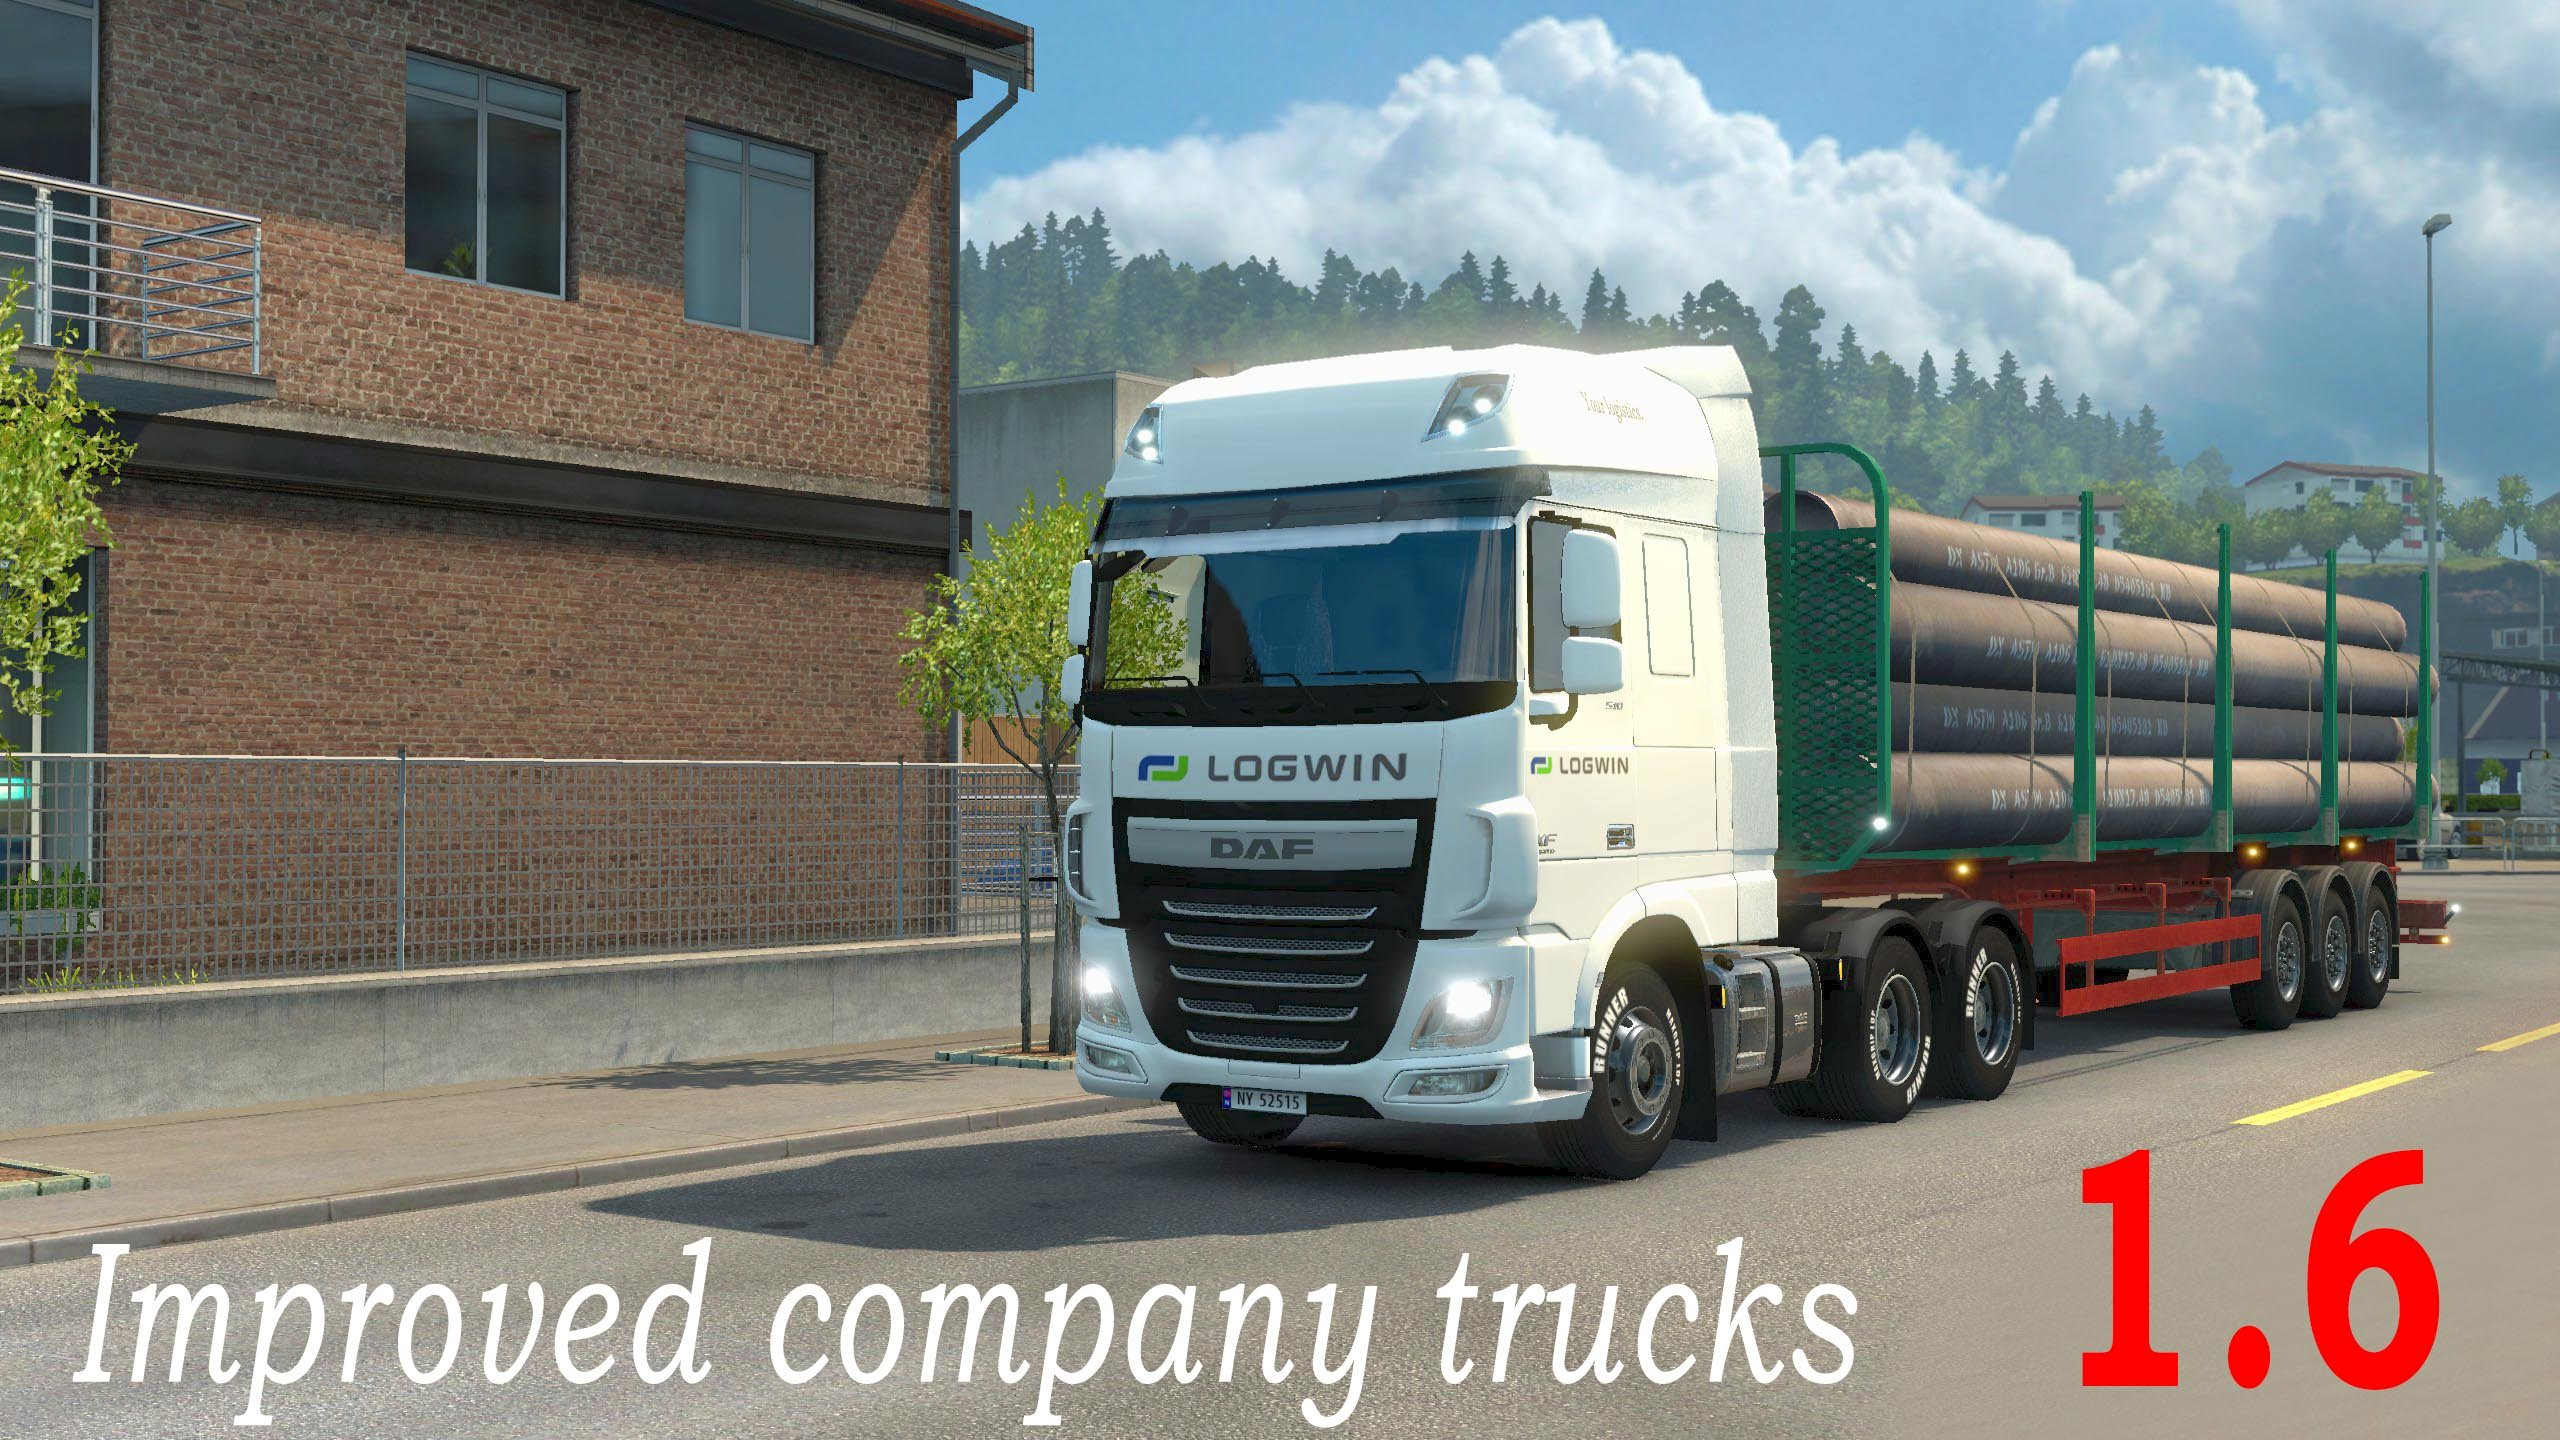 Improved Company Trucks Mod v 1.6